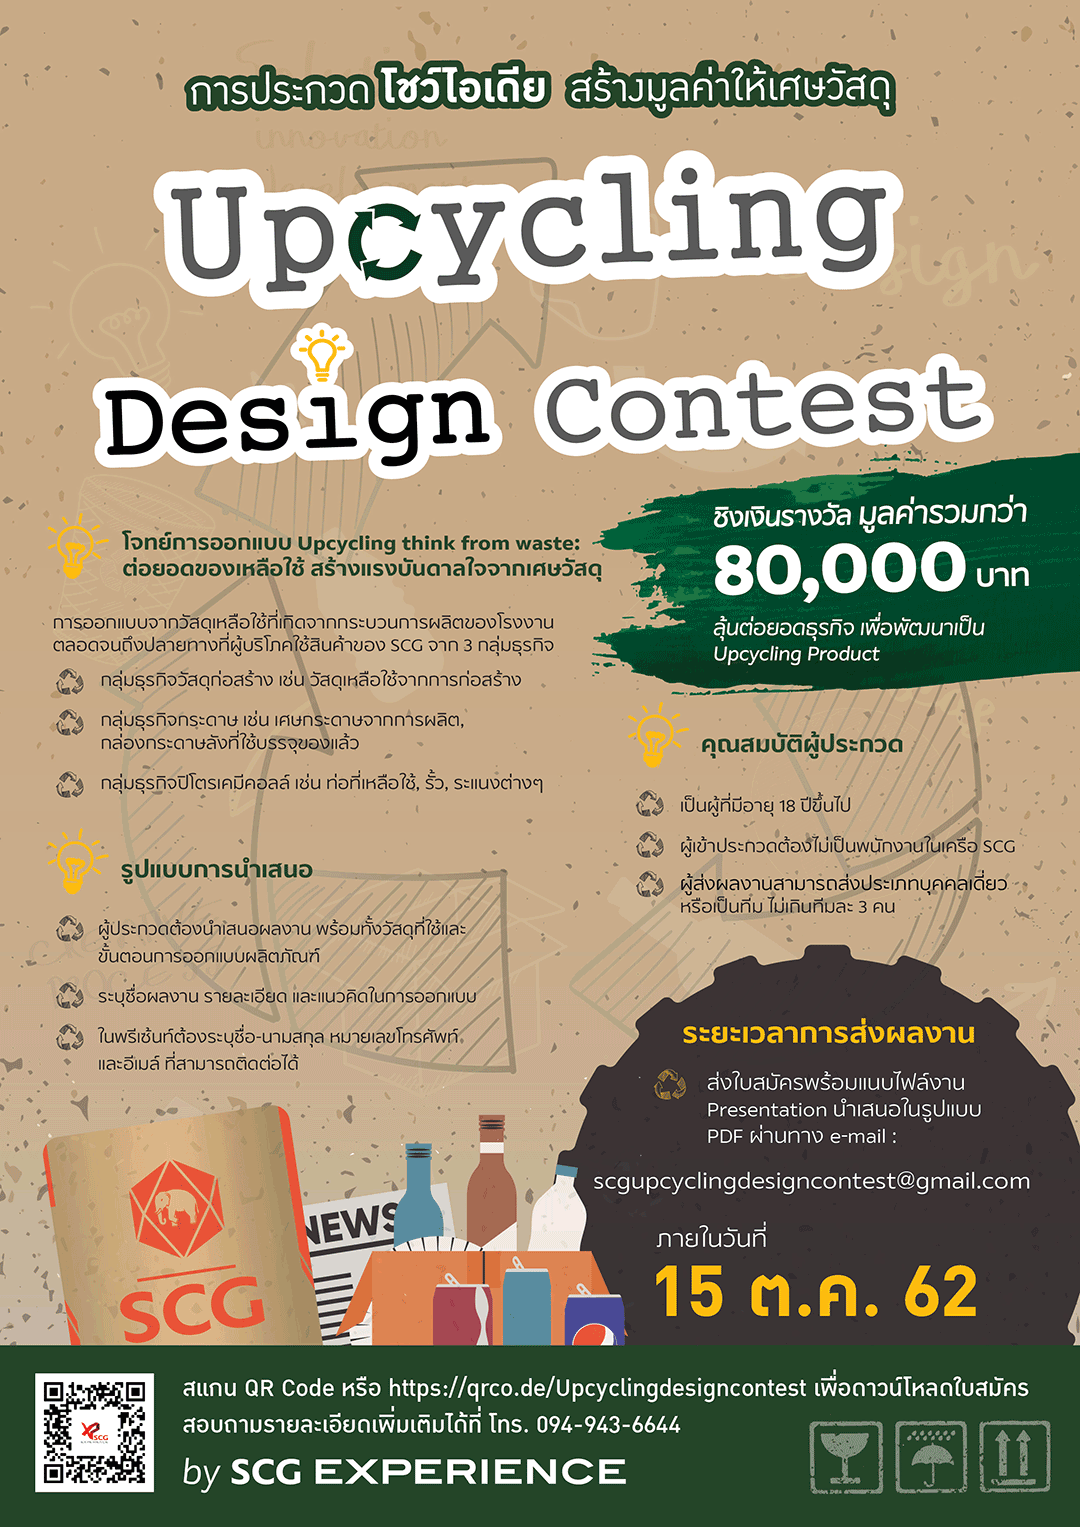 Upcycling Design Contest